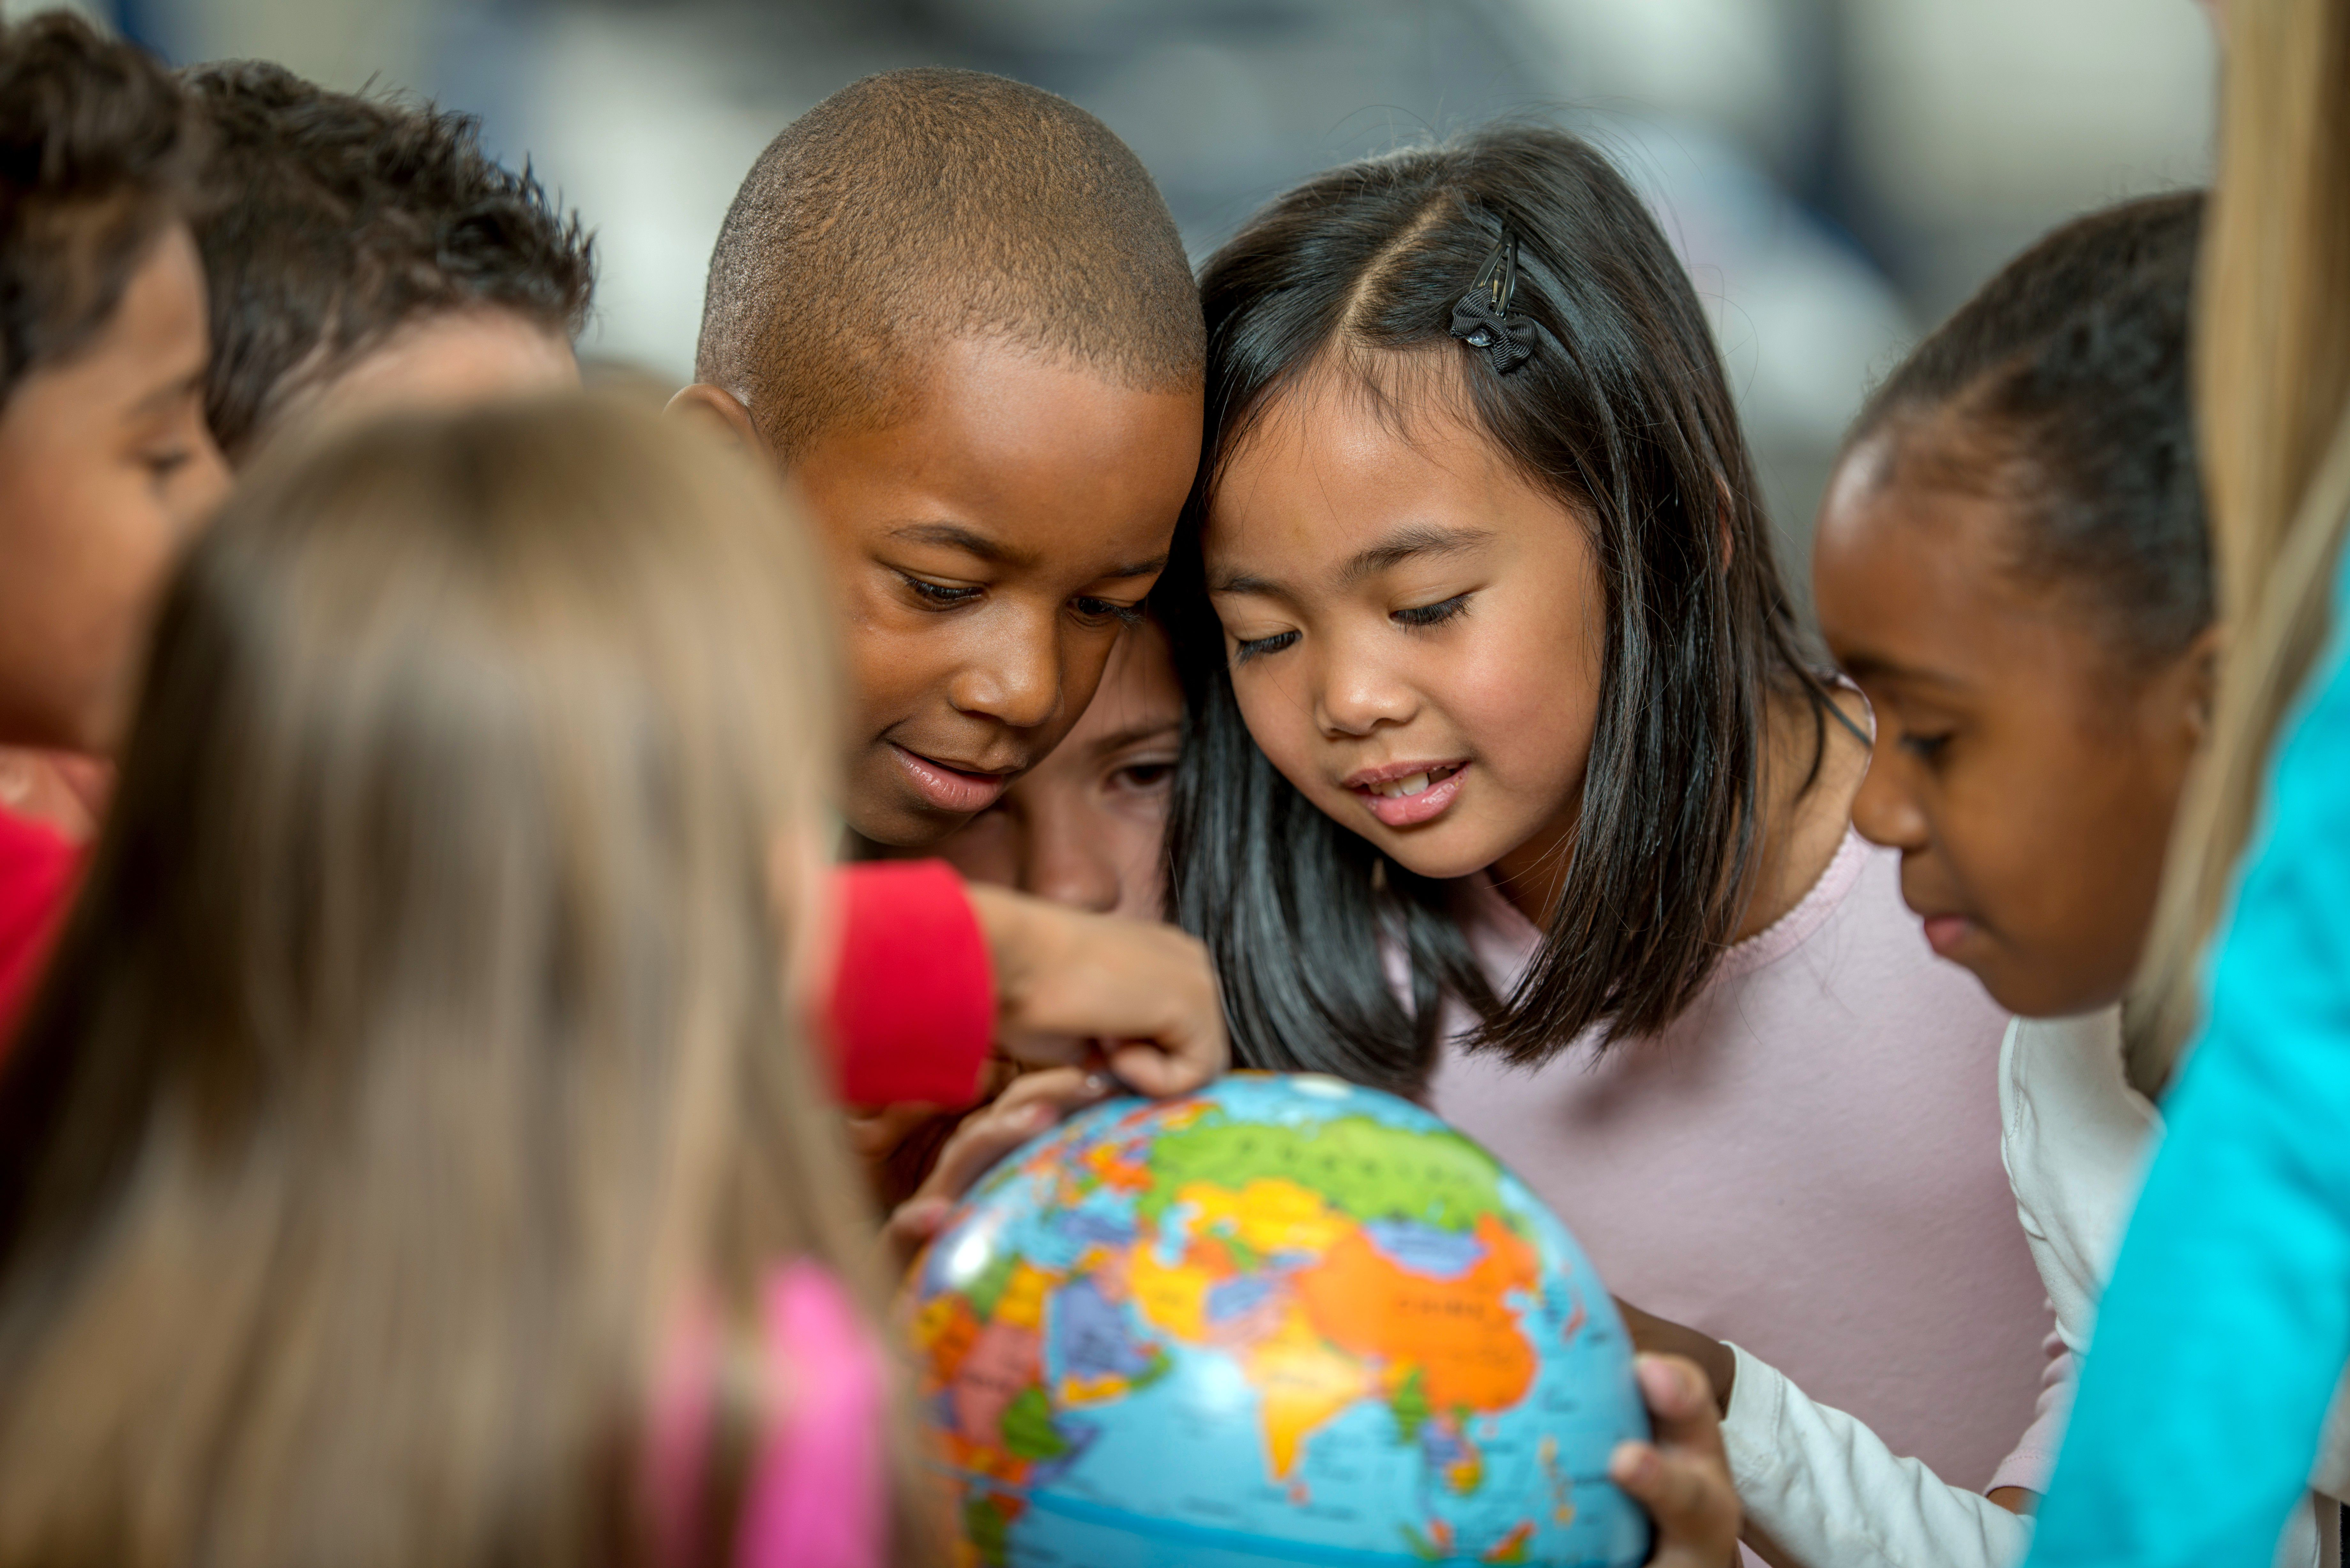 Primary school students learn about countries and geography by examining a globe